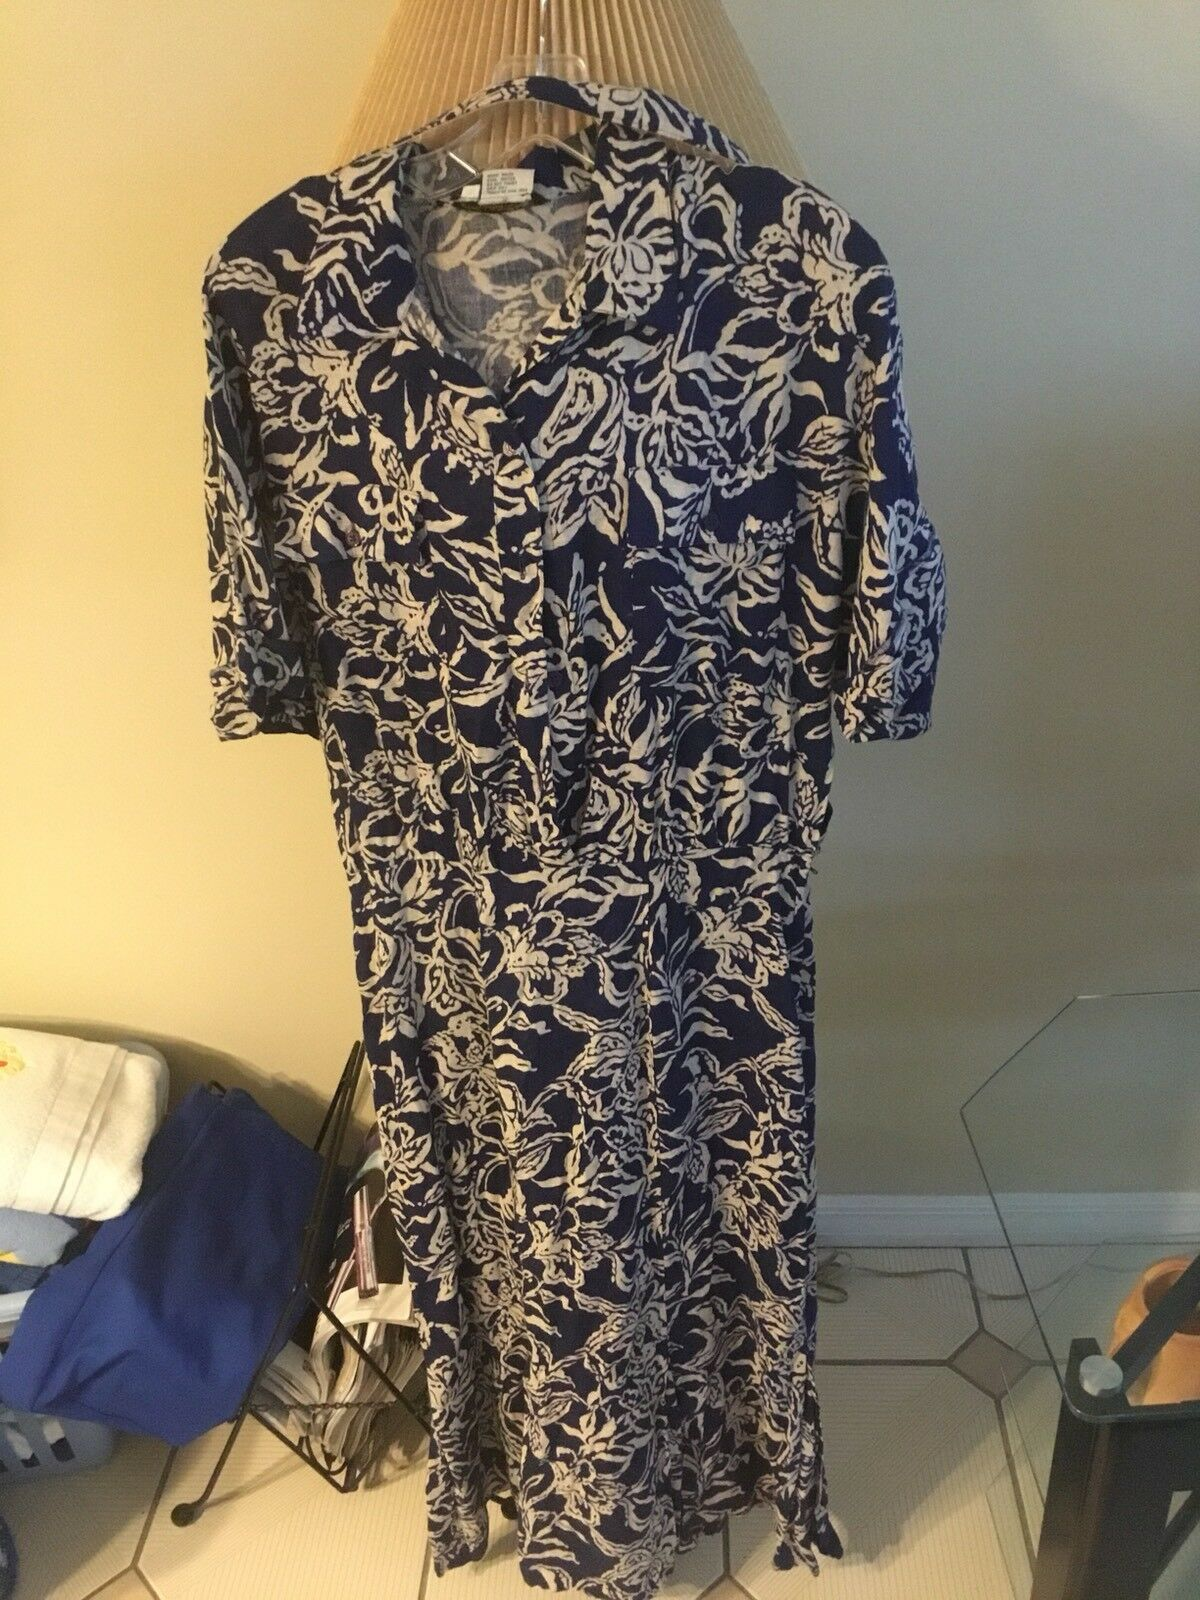 Vintage Dvf Diane Von Furstenburg Sz 14 Floral Dress With Belt Linen Blend Euc